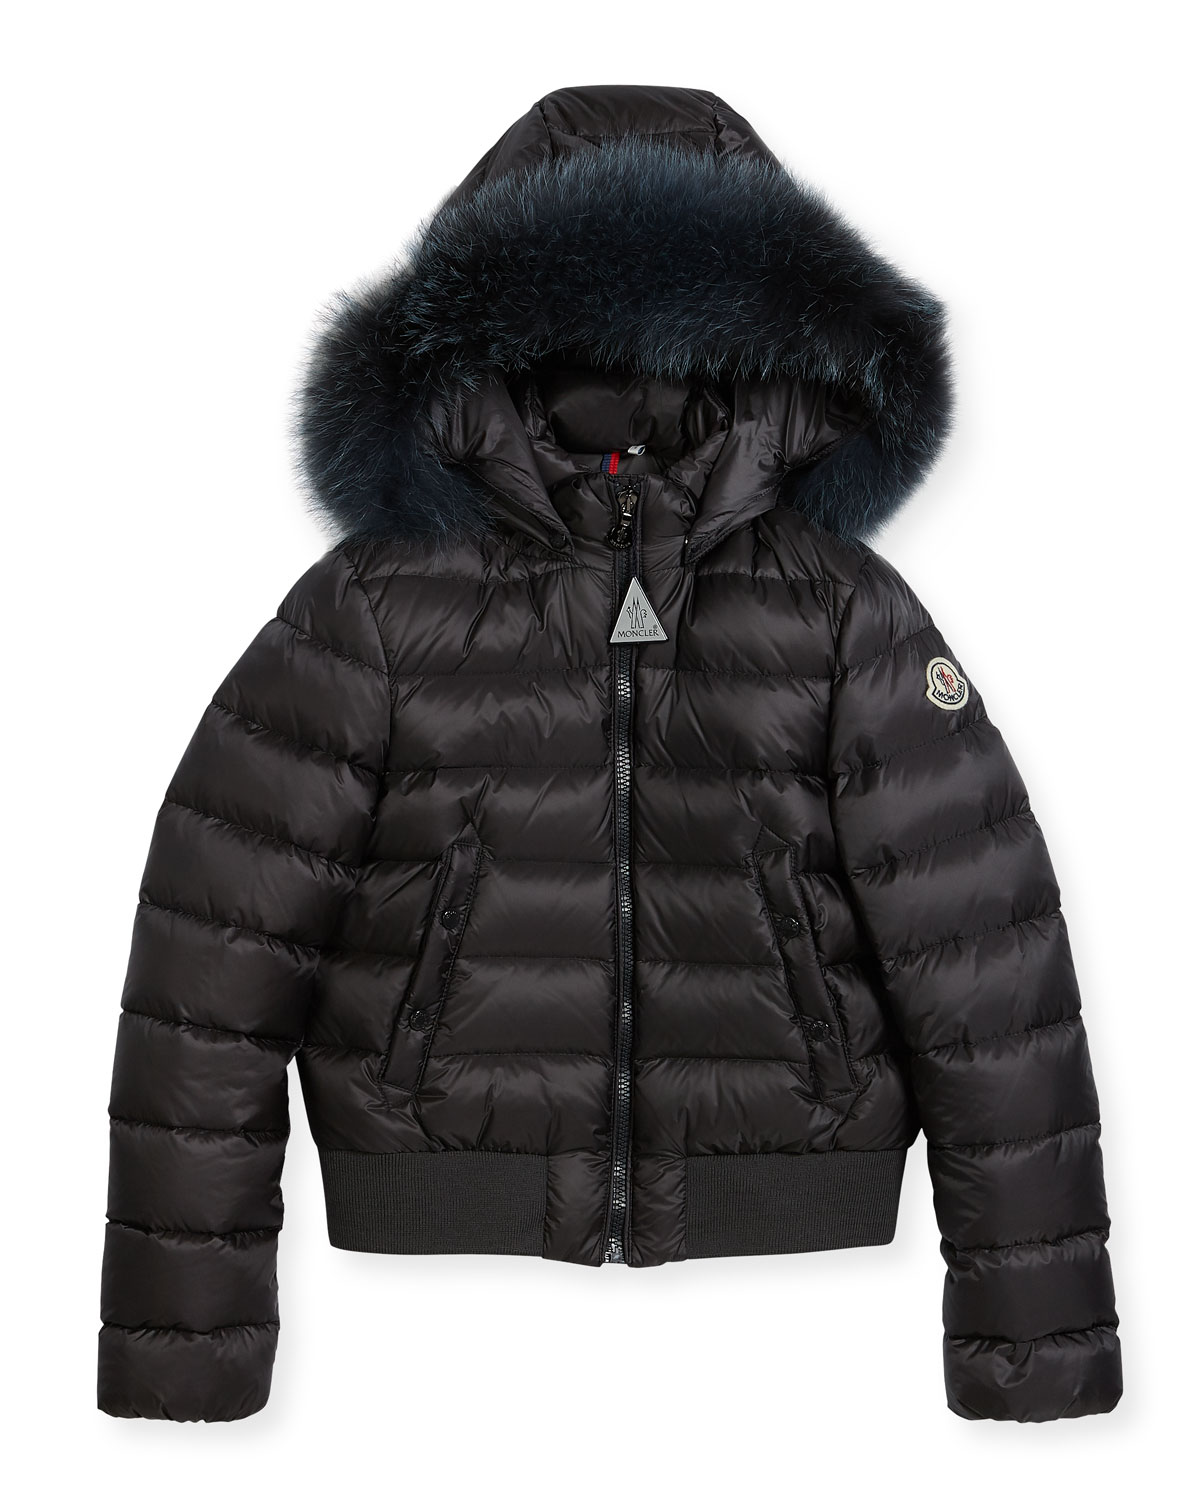 286d0bab4 Moncler New Alberta Quilted Coat w  Fur Trim